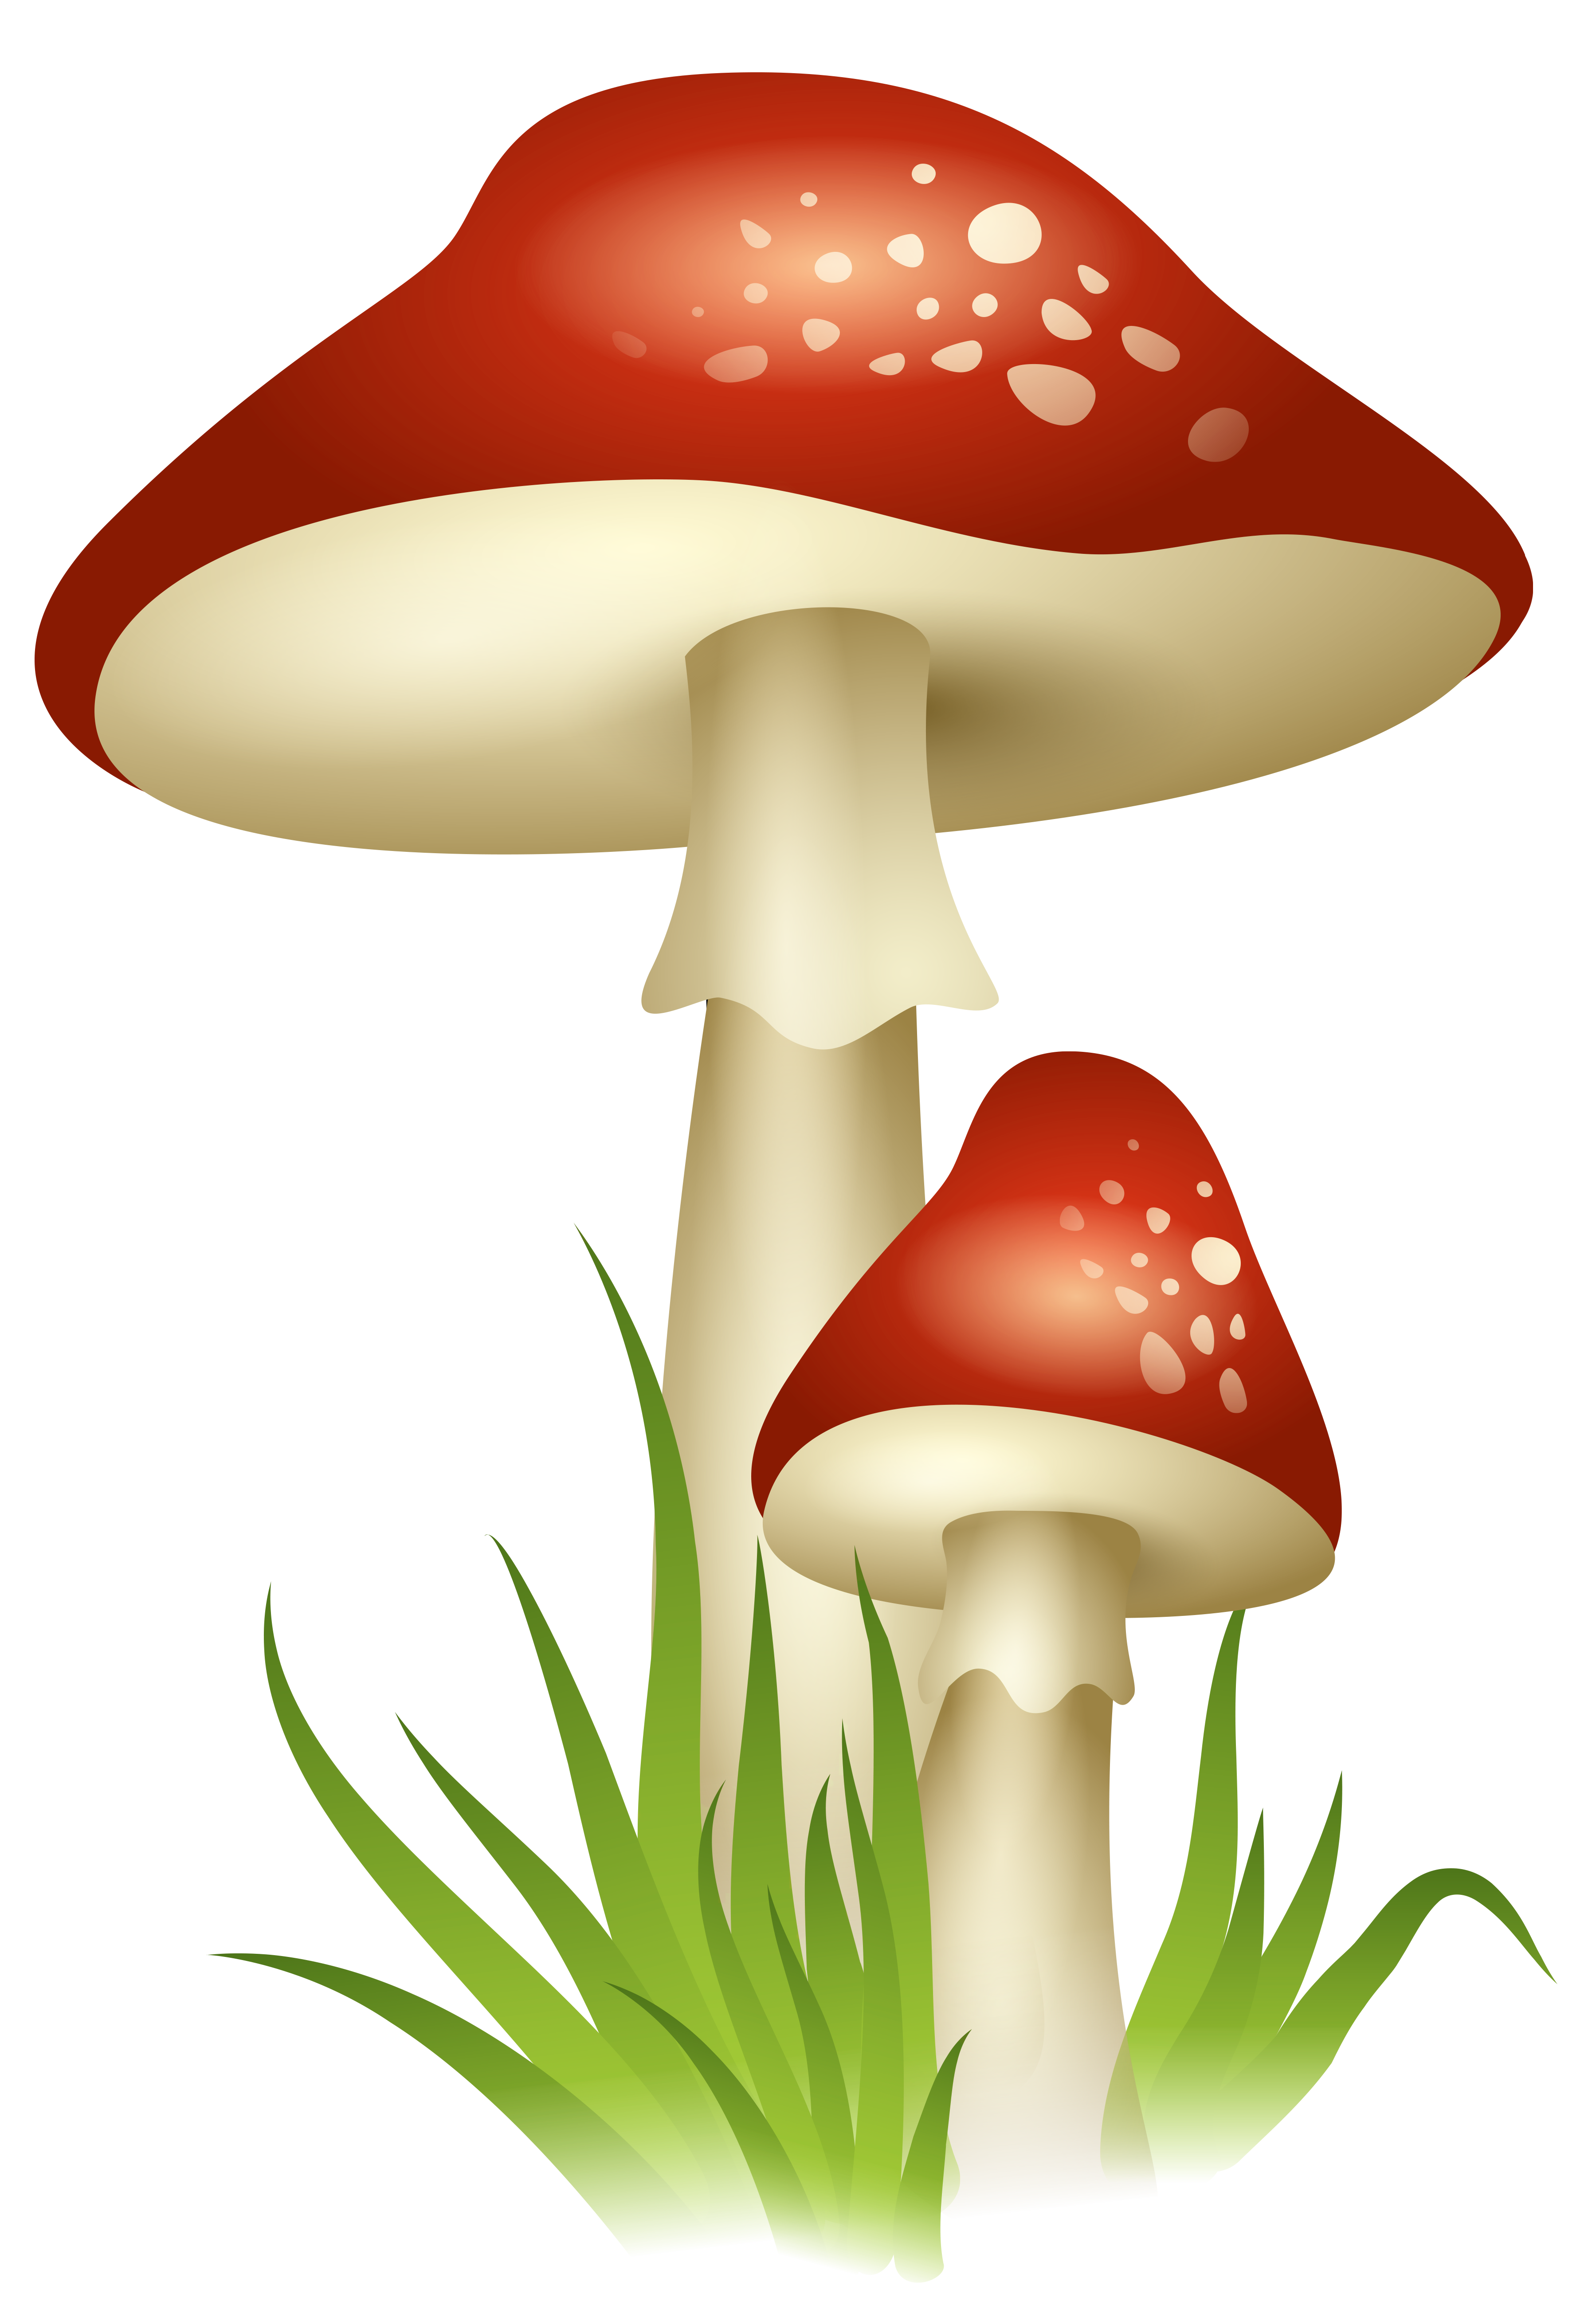 3599x5234 Mushrooms Transparent Png Pictureu200b Gallery Yopriceville